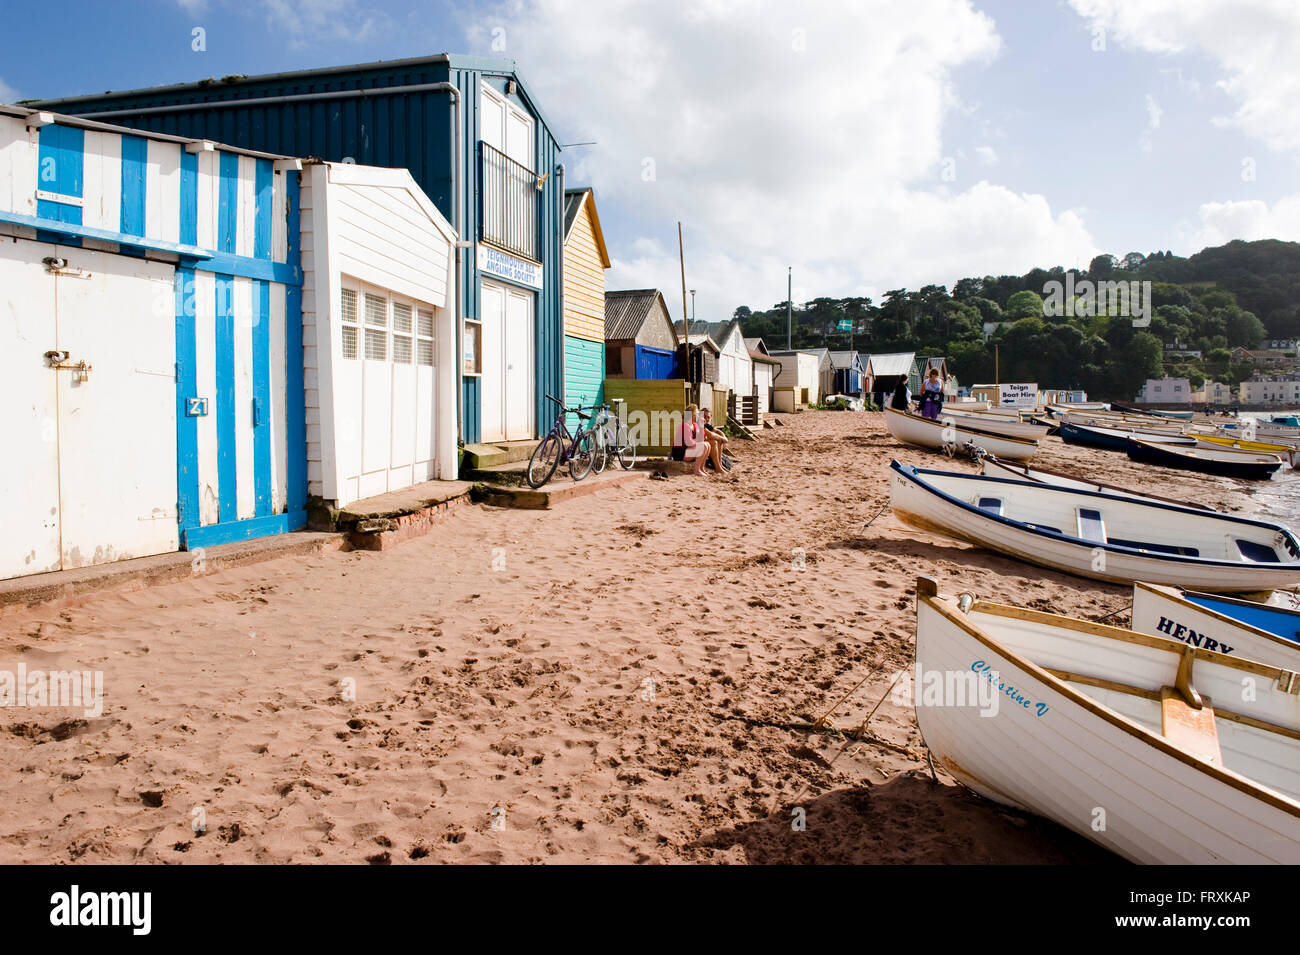 Boats and houses at riverbank, Shaldon, Teignmouth, Devon, South West England, England, Great Britain - Stock Image